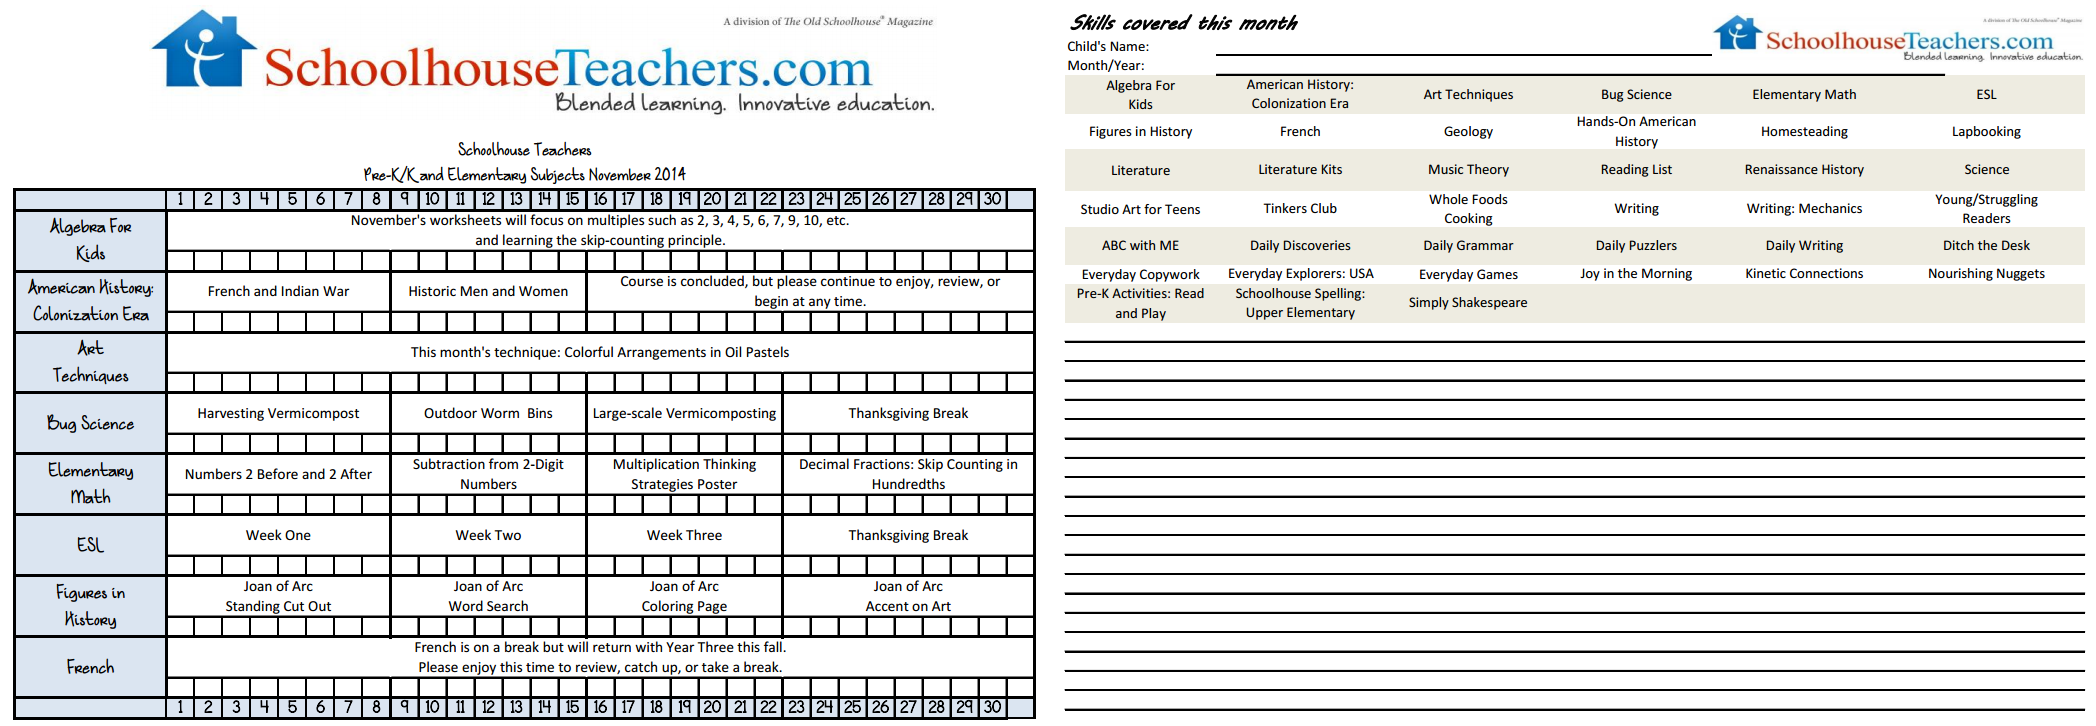 Printable checklists for Pre-K/Elem, Middle School, and High School